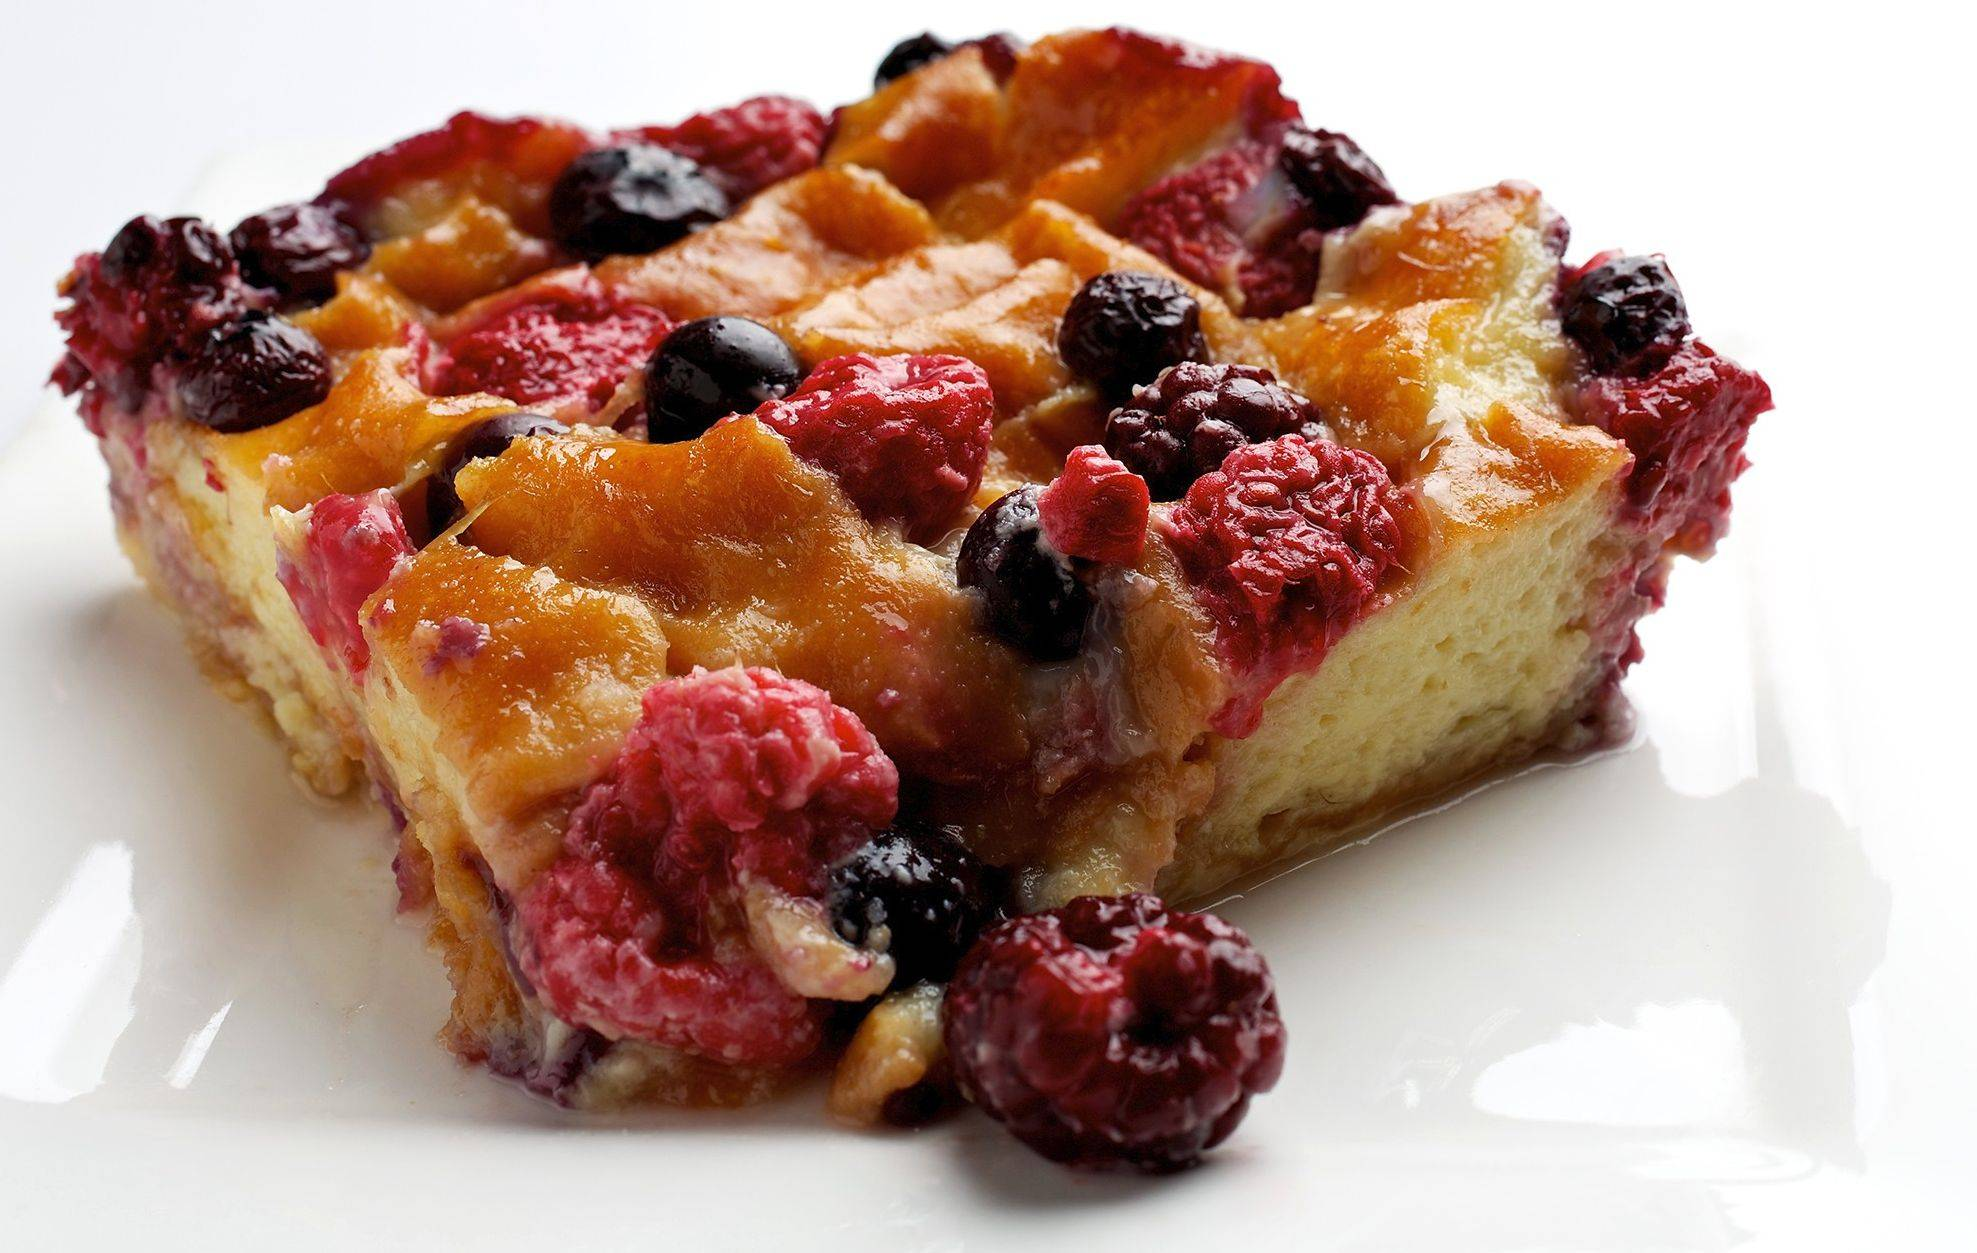 This twist on bread pudding is so good you�ll want to buy extra doughnuts next time you�re at the shop. Add your favorite berries or fruit.